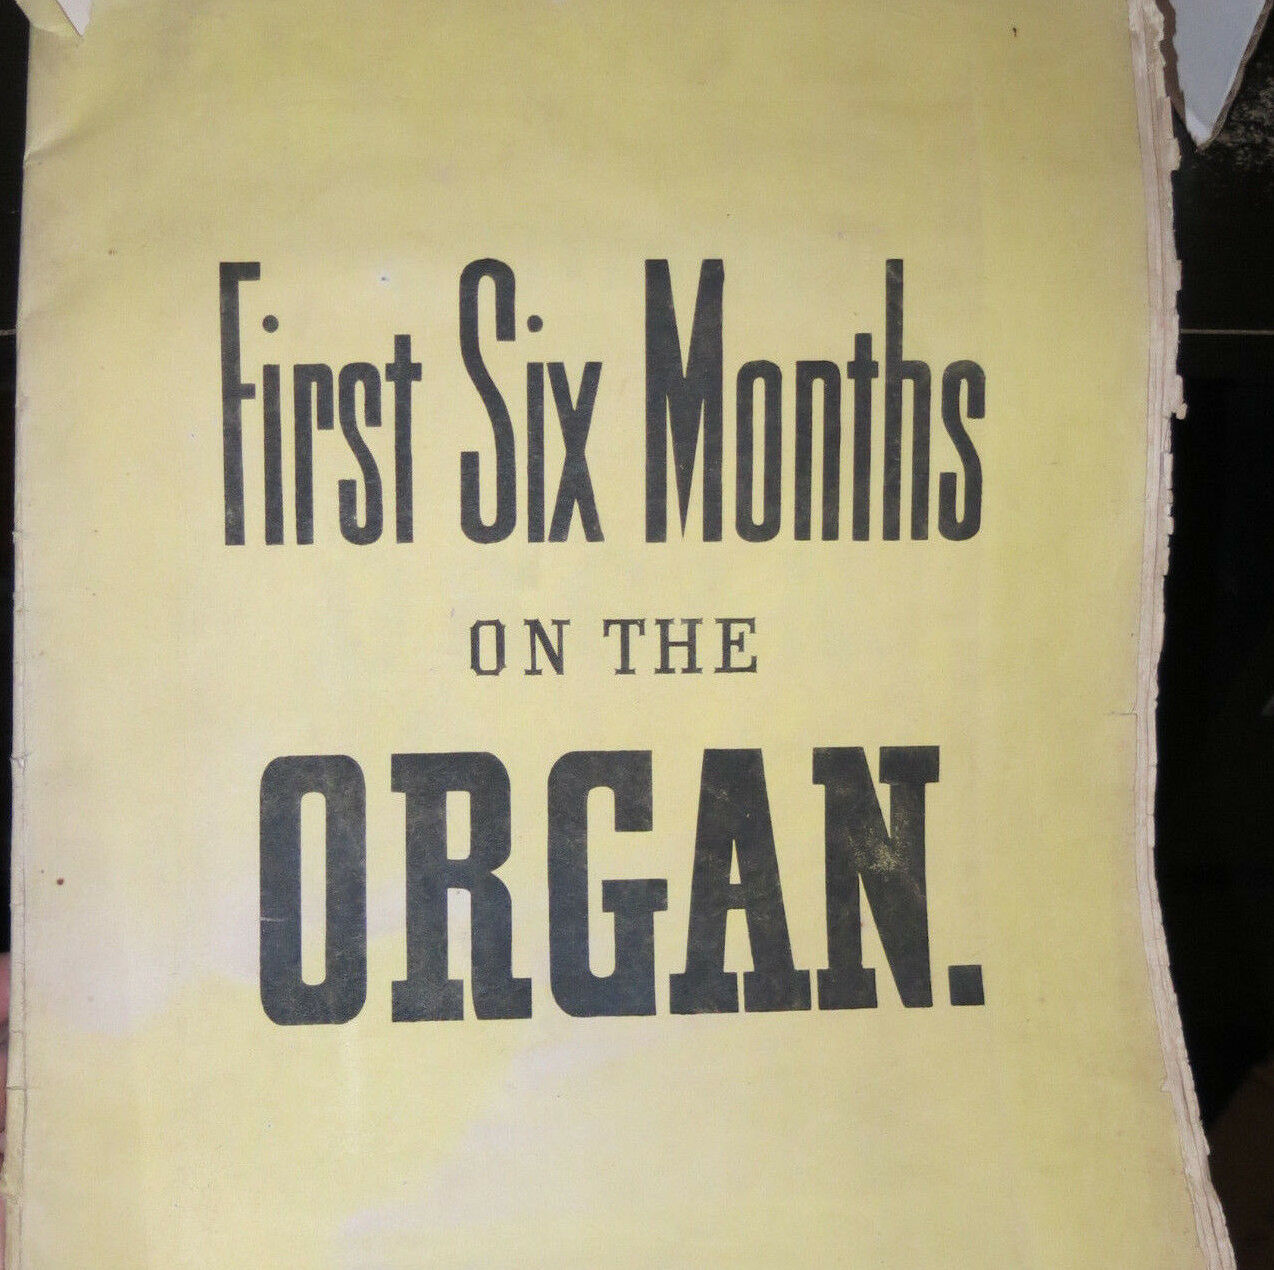 Whiting's First Six Months on the Organ c 1870 25 Progressive Studies Rare